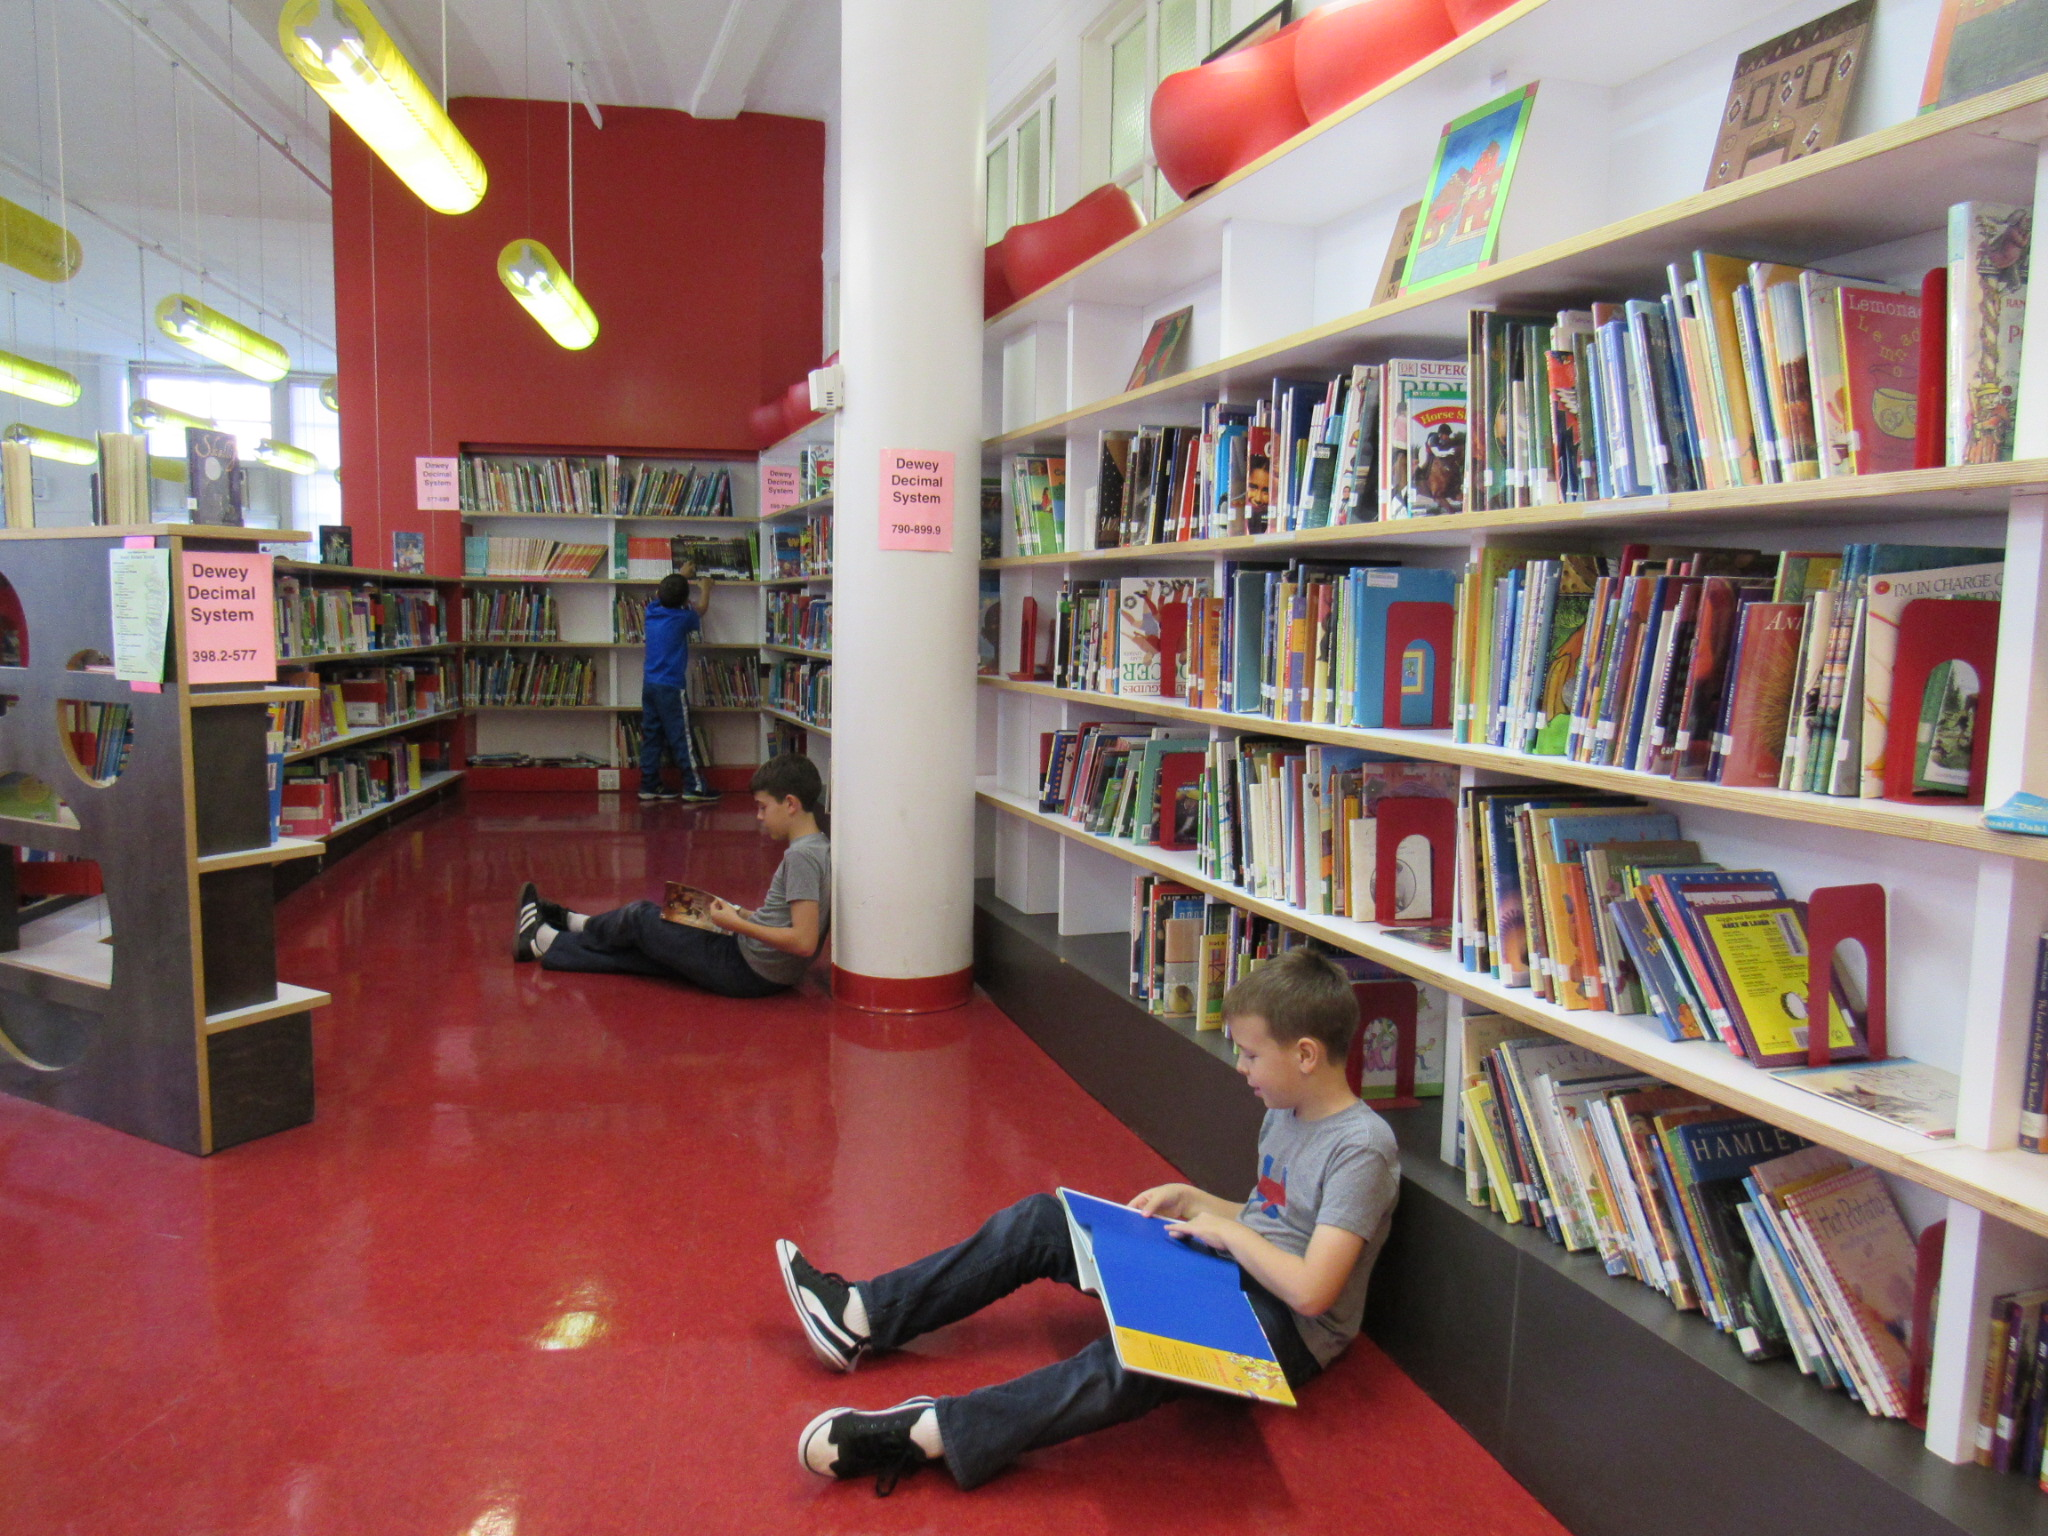 our library - Funded by a Robin Hood Foundation Grant, our state of the art Library is on of the outstanding features of PS 110. The library opened in 2008 filled with brand new books and computers. The meticulously designed space creates an ideal atmosphere for students to get excited about reading. Each class visits the library weekly to check out books, listen to readings and participate in interactive discussions. The library also serves as a meeting place for parent groups, hosts evening PTA seminars, and houses a media center for teachers and staff.The library is led by our librarian, Eliza Farrell. Every PS 110 parent is welcome and encouraged to get involved. This three-way partnership allows our children access to a phenomenal resource. It is also a great example of working together, one of the core values of PS 110.***To access additional resources, please click here.